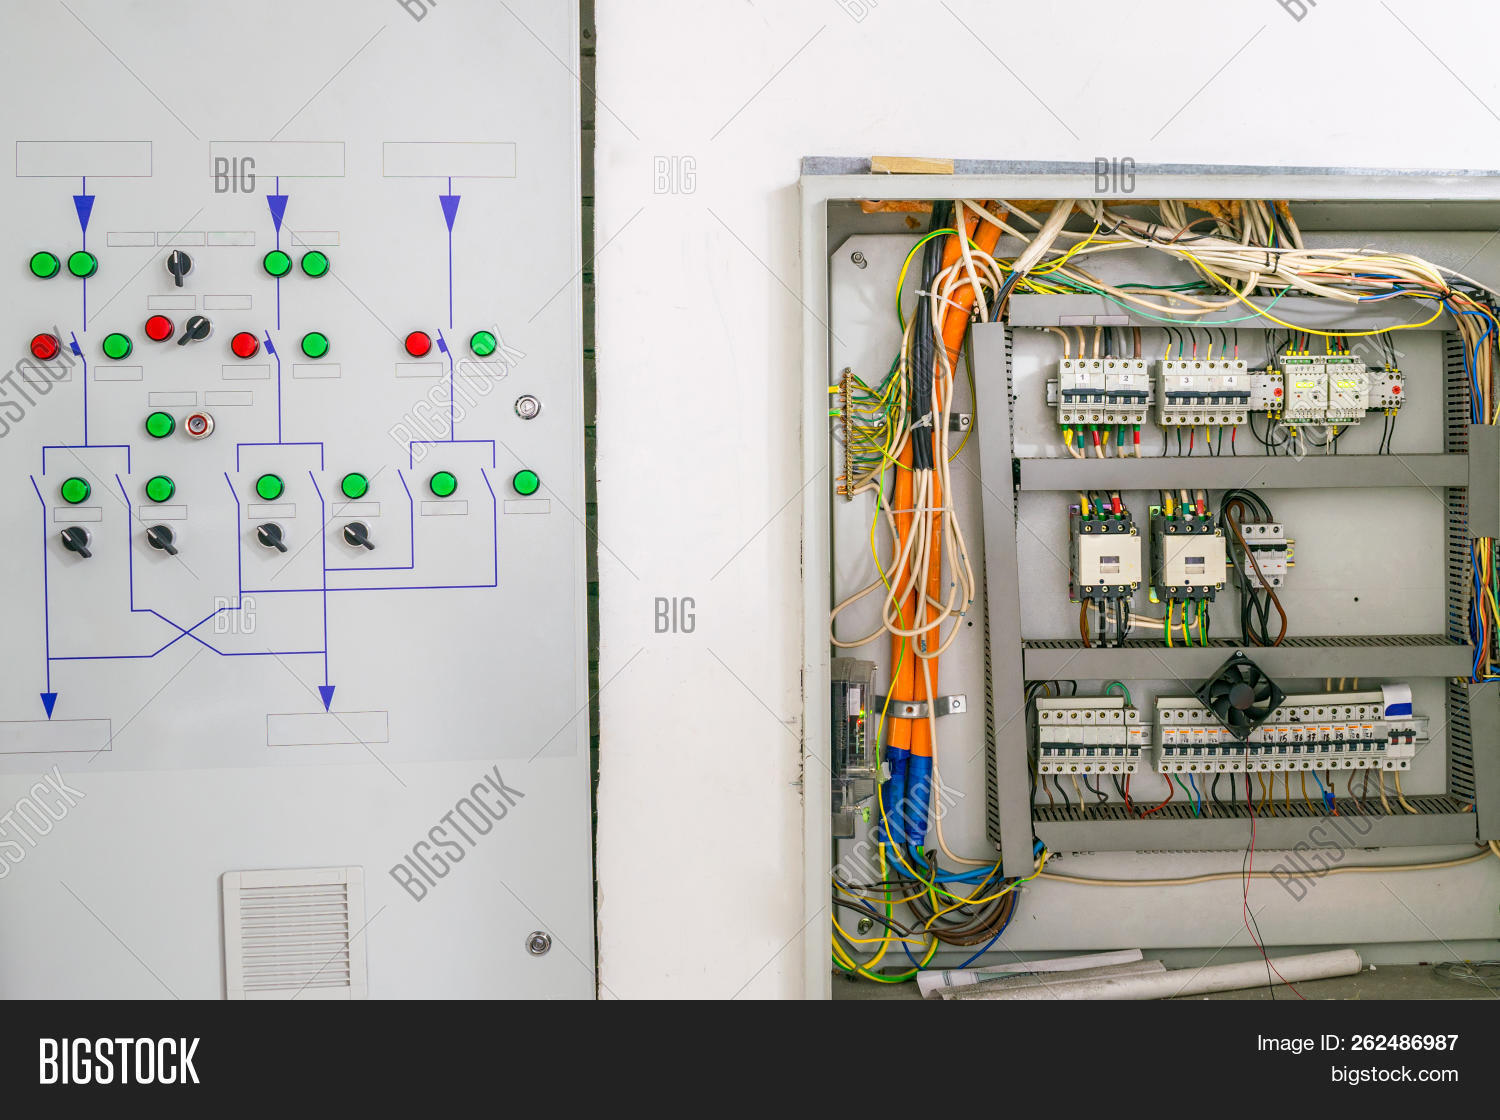 hight resolution of an electrical box containing many contacts relays switches and wires technical cabinet with high voltage equipment and powerful power cables